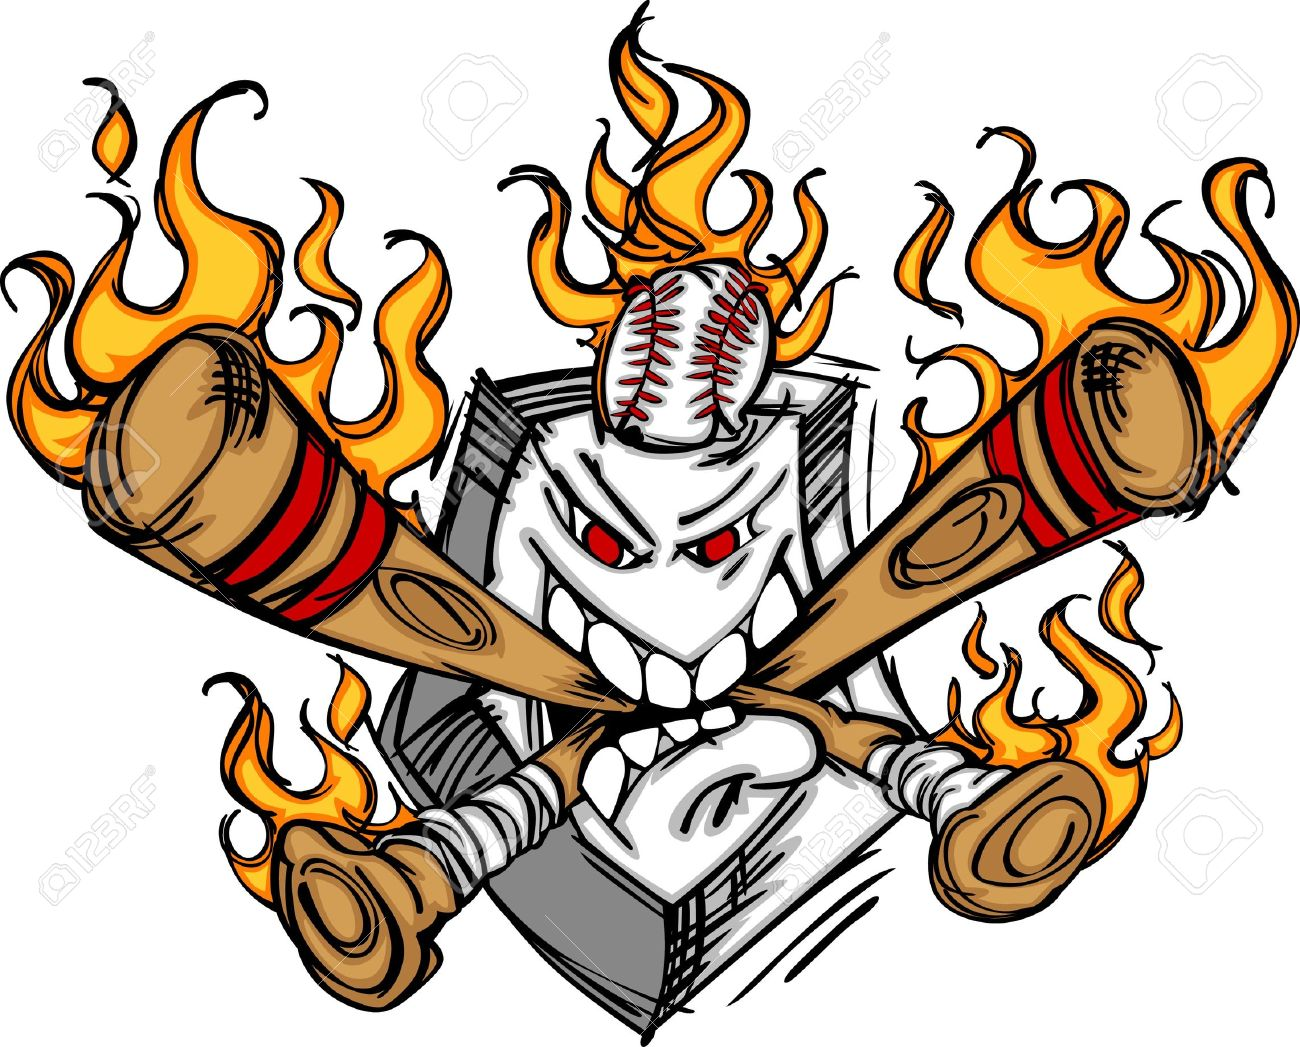 softball baseball plate and bats flaming cartoon logo royalty free rh 123rf com softball logo ideas softball logo design